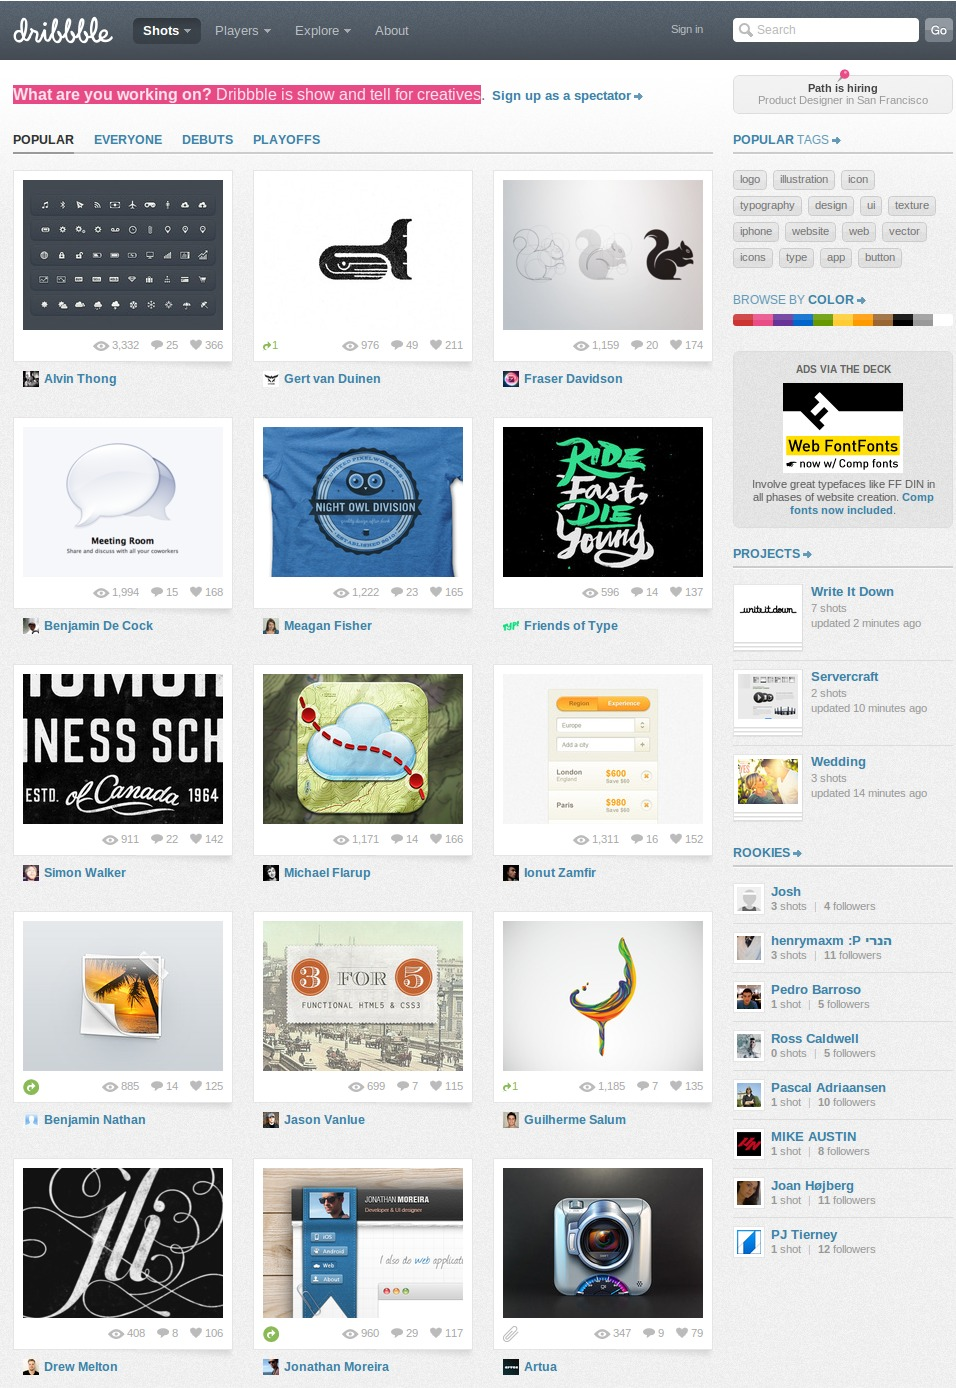 dribbble-com-screenshot-show-and-tell-for-creatives